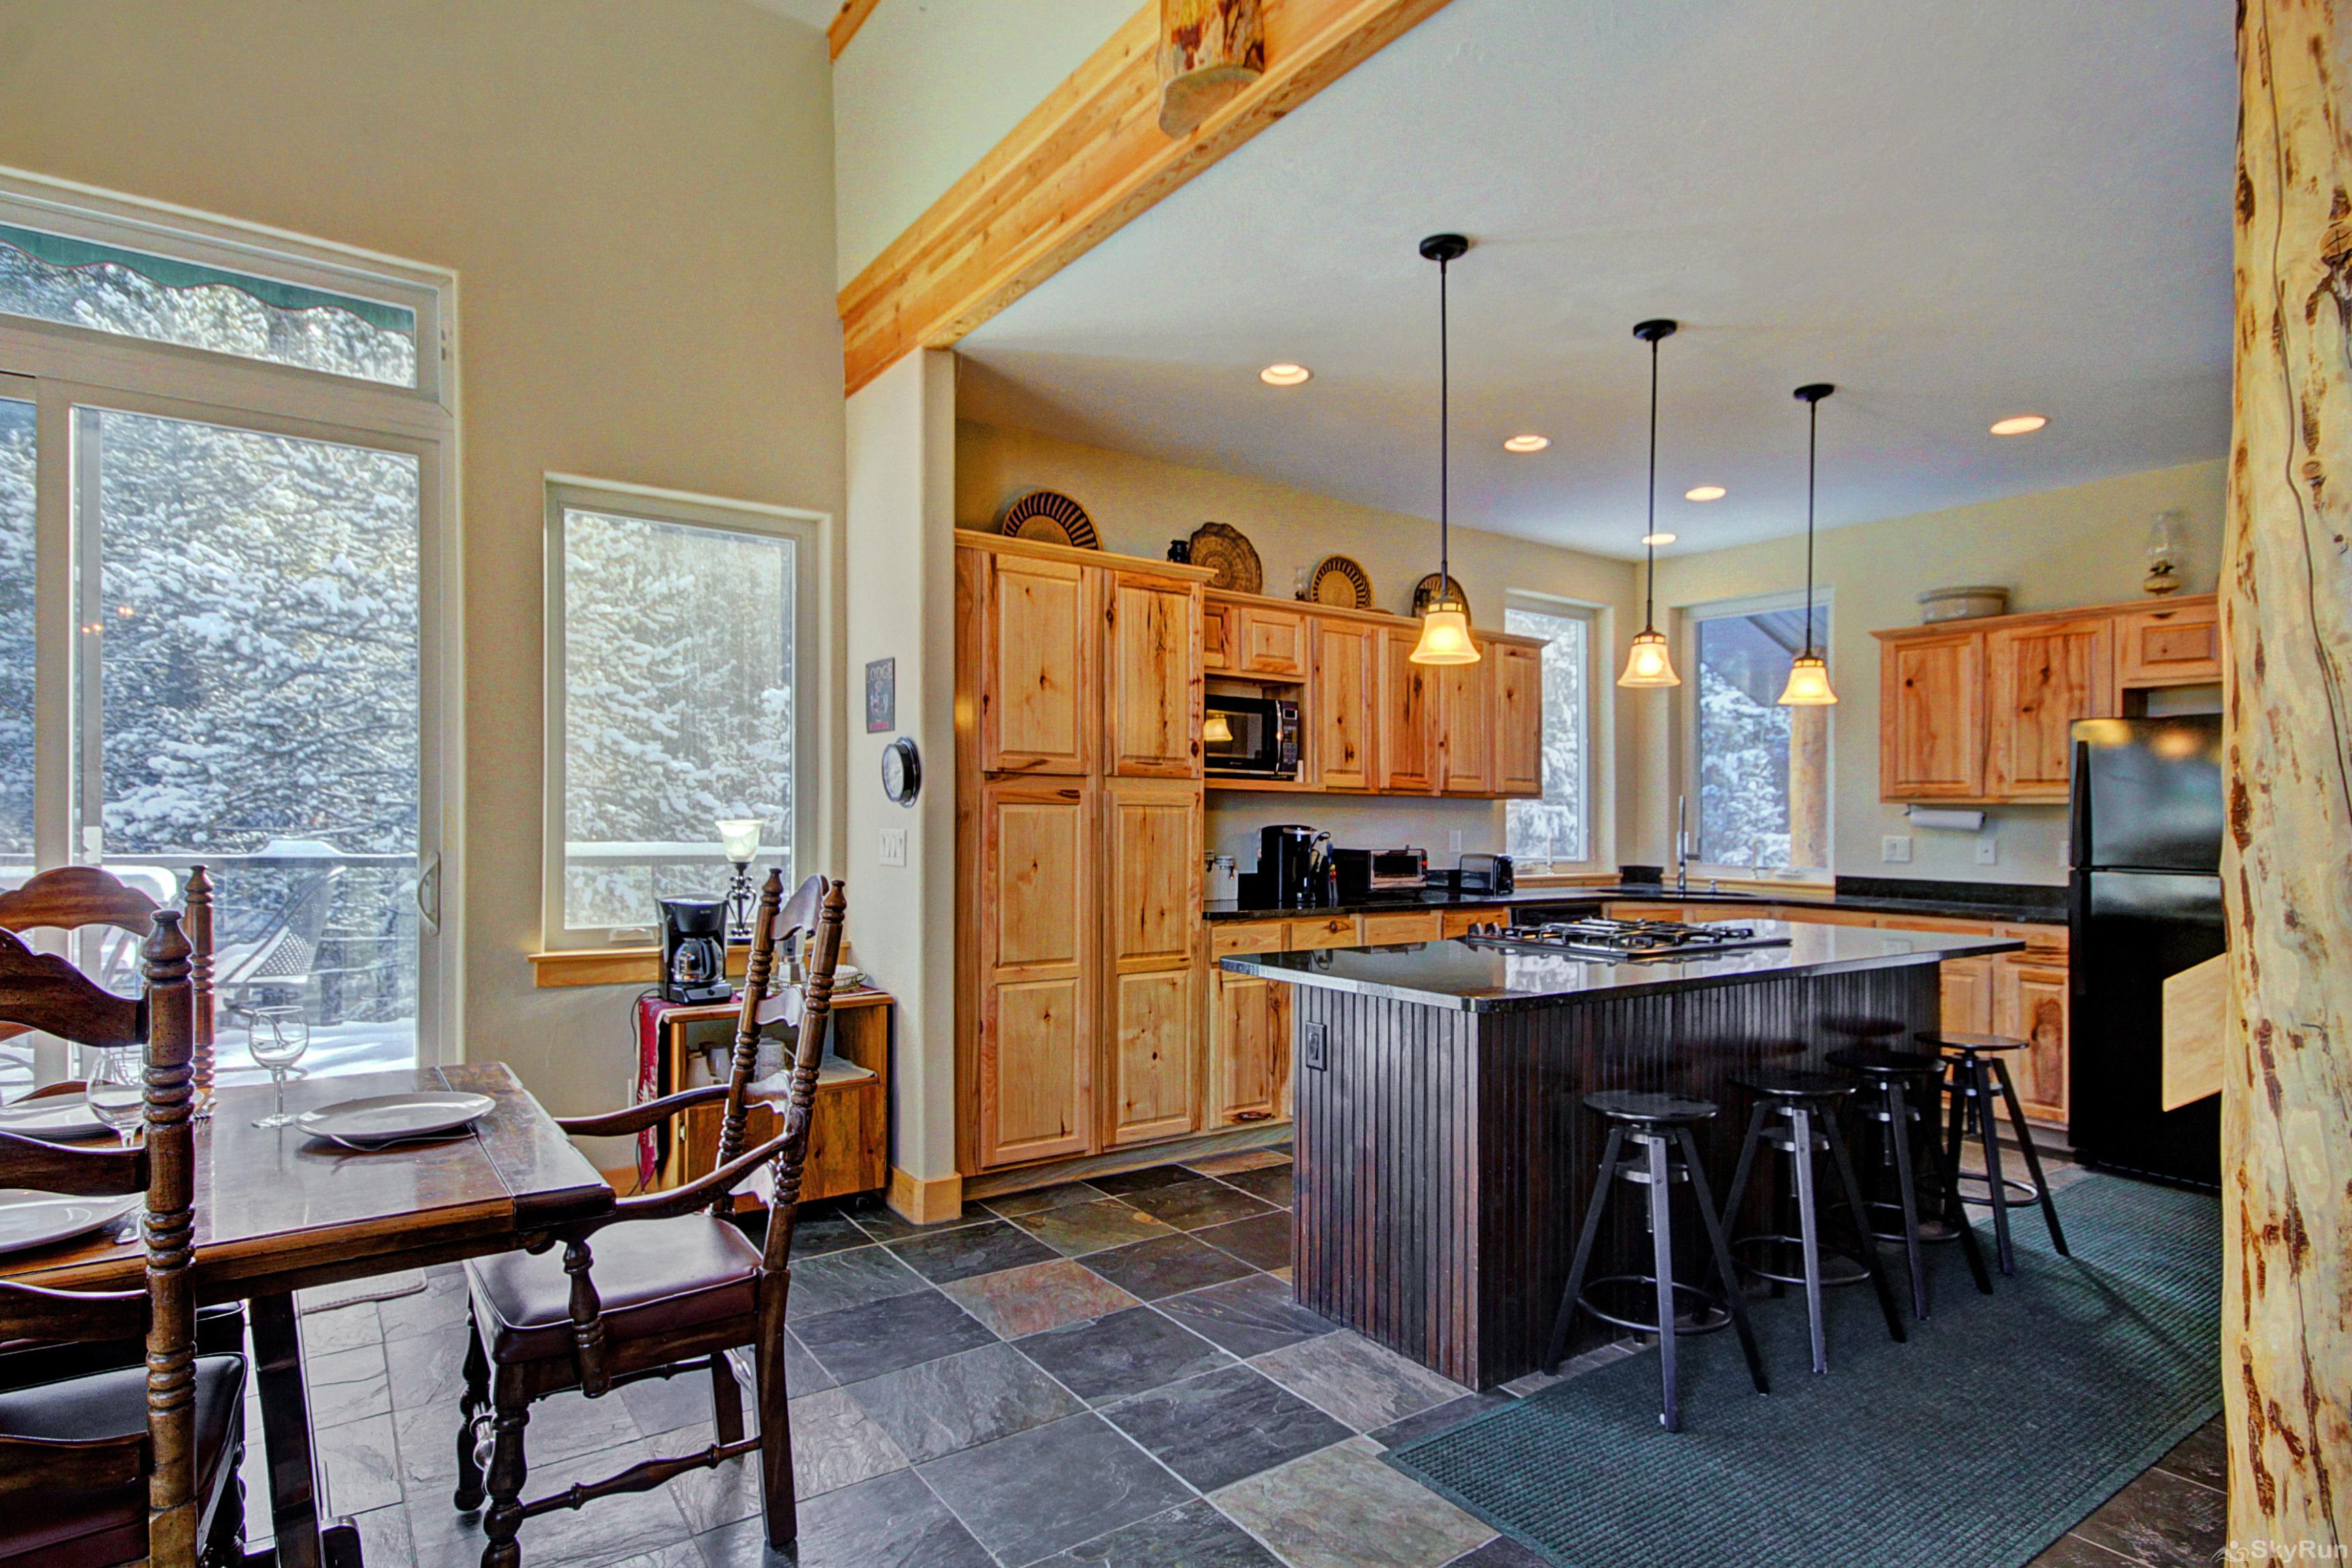 Twin Creek Lodge Kitchen opens up to dining and living room areas